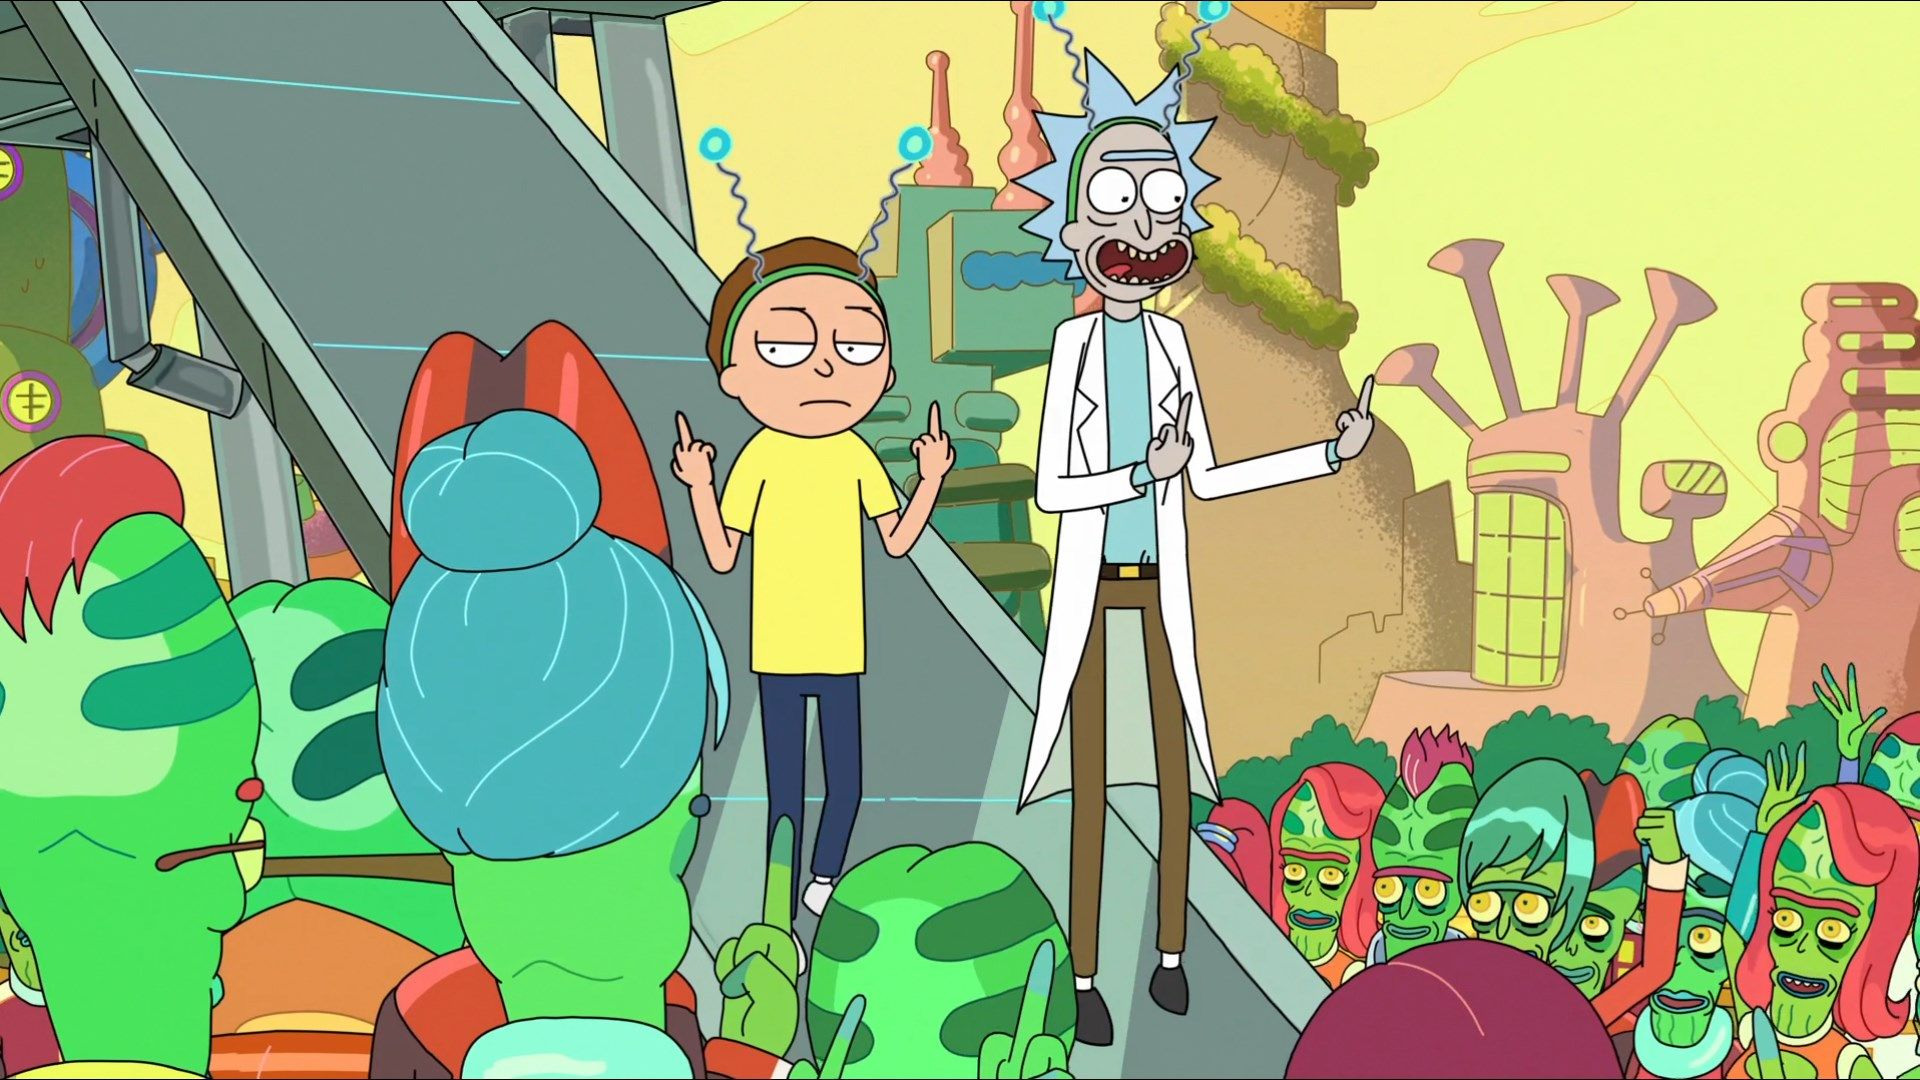 free desktop backgrounds for rick and morty 1920x1080 353 kb